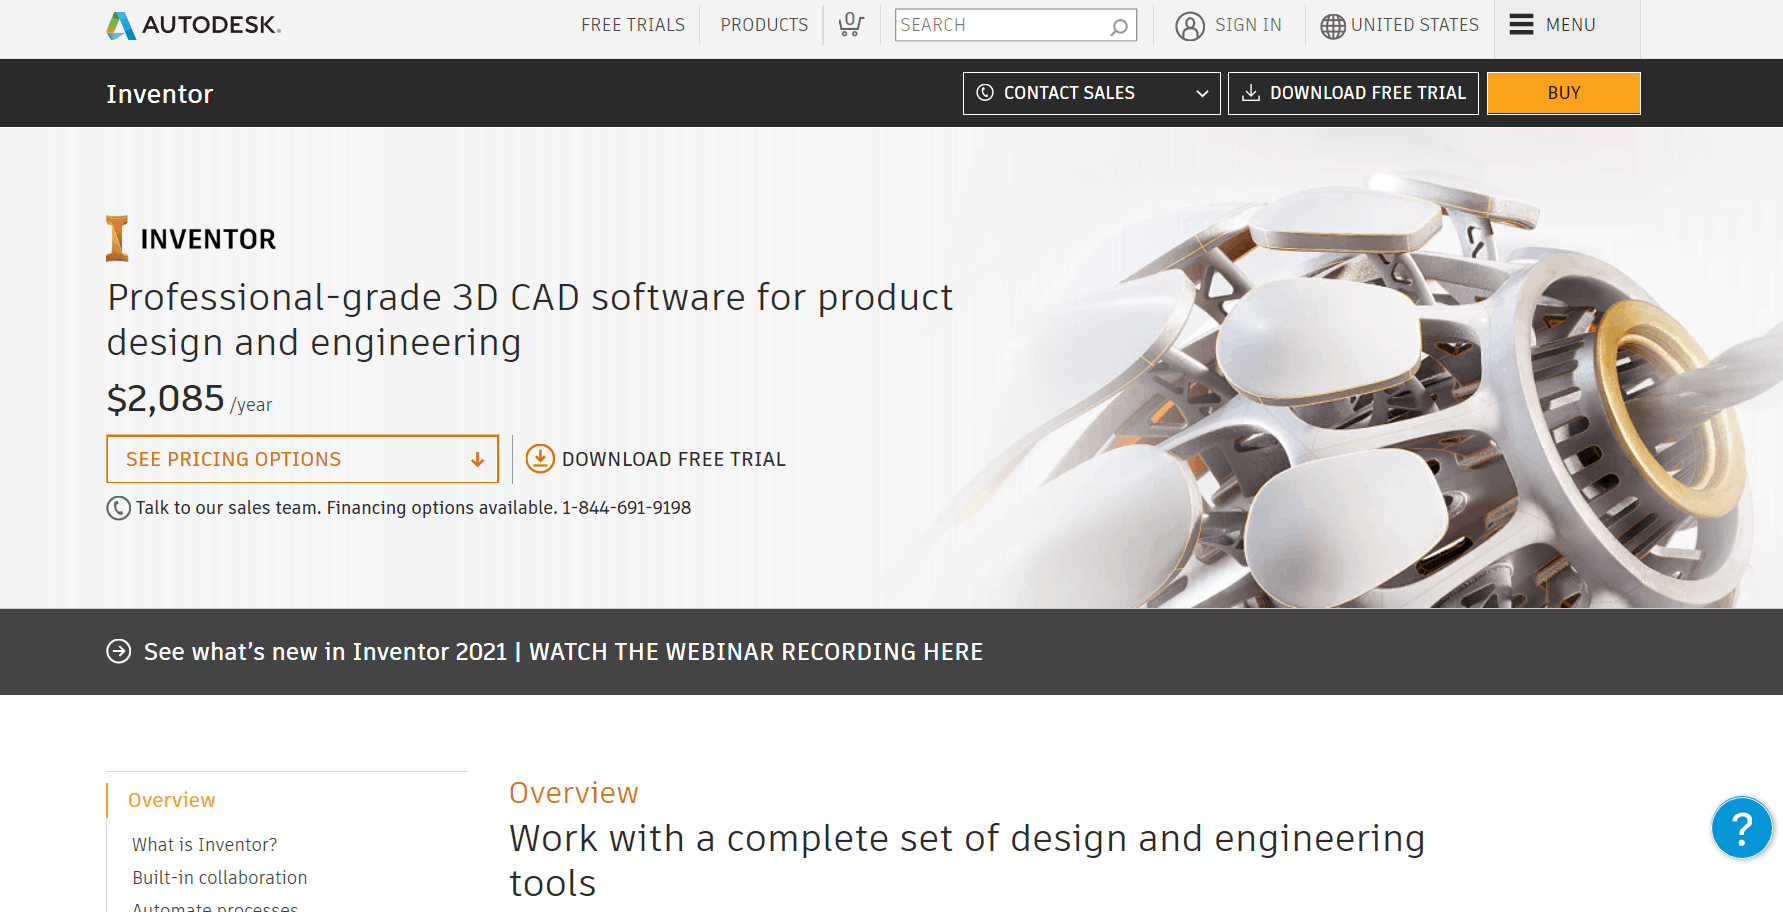 What is Autodesk Inventor